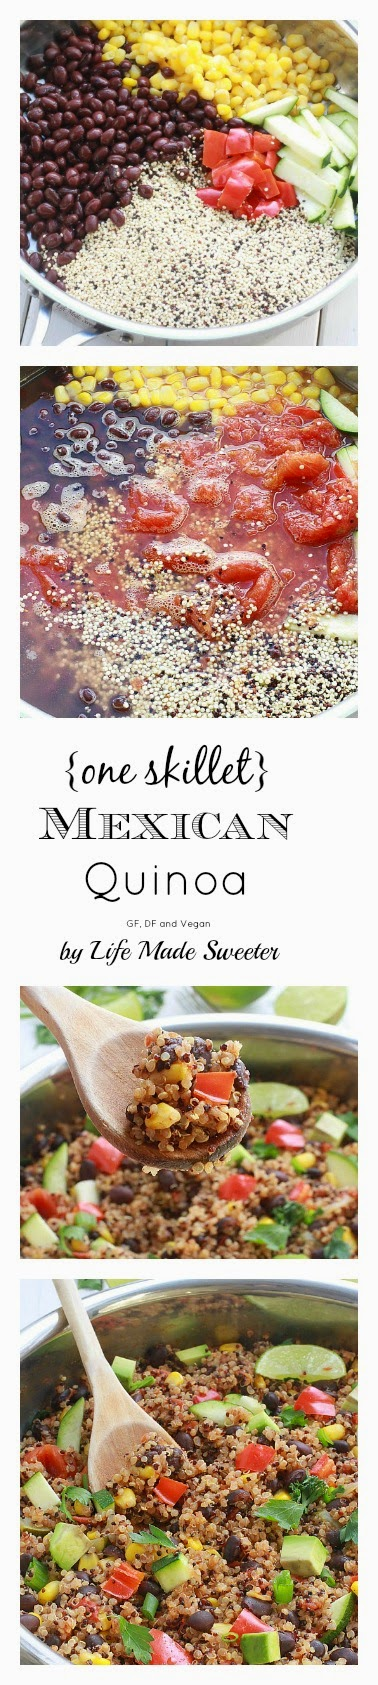 {One Skillet} Mexican Quinoa - An easy and healthy meatless quinoa dish made all in one pan with your favorite Mexican flavors! GF, DF and Vegan by @LifeMadeSweeter.jpg